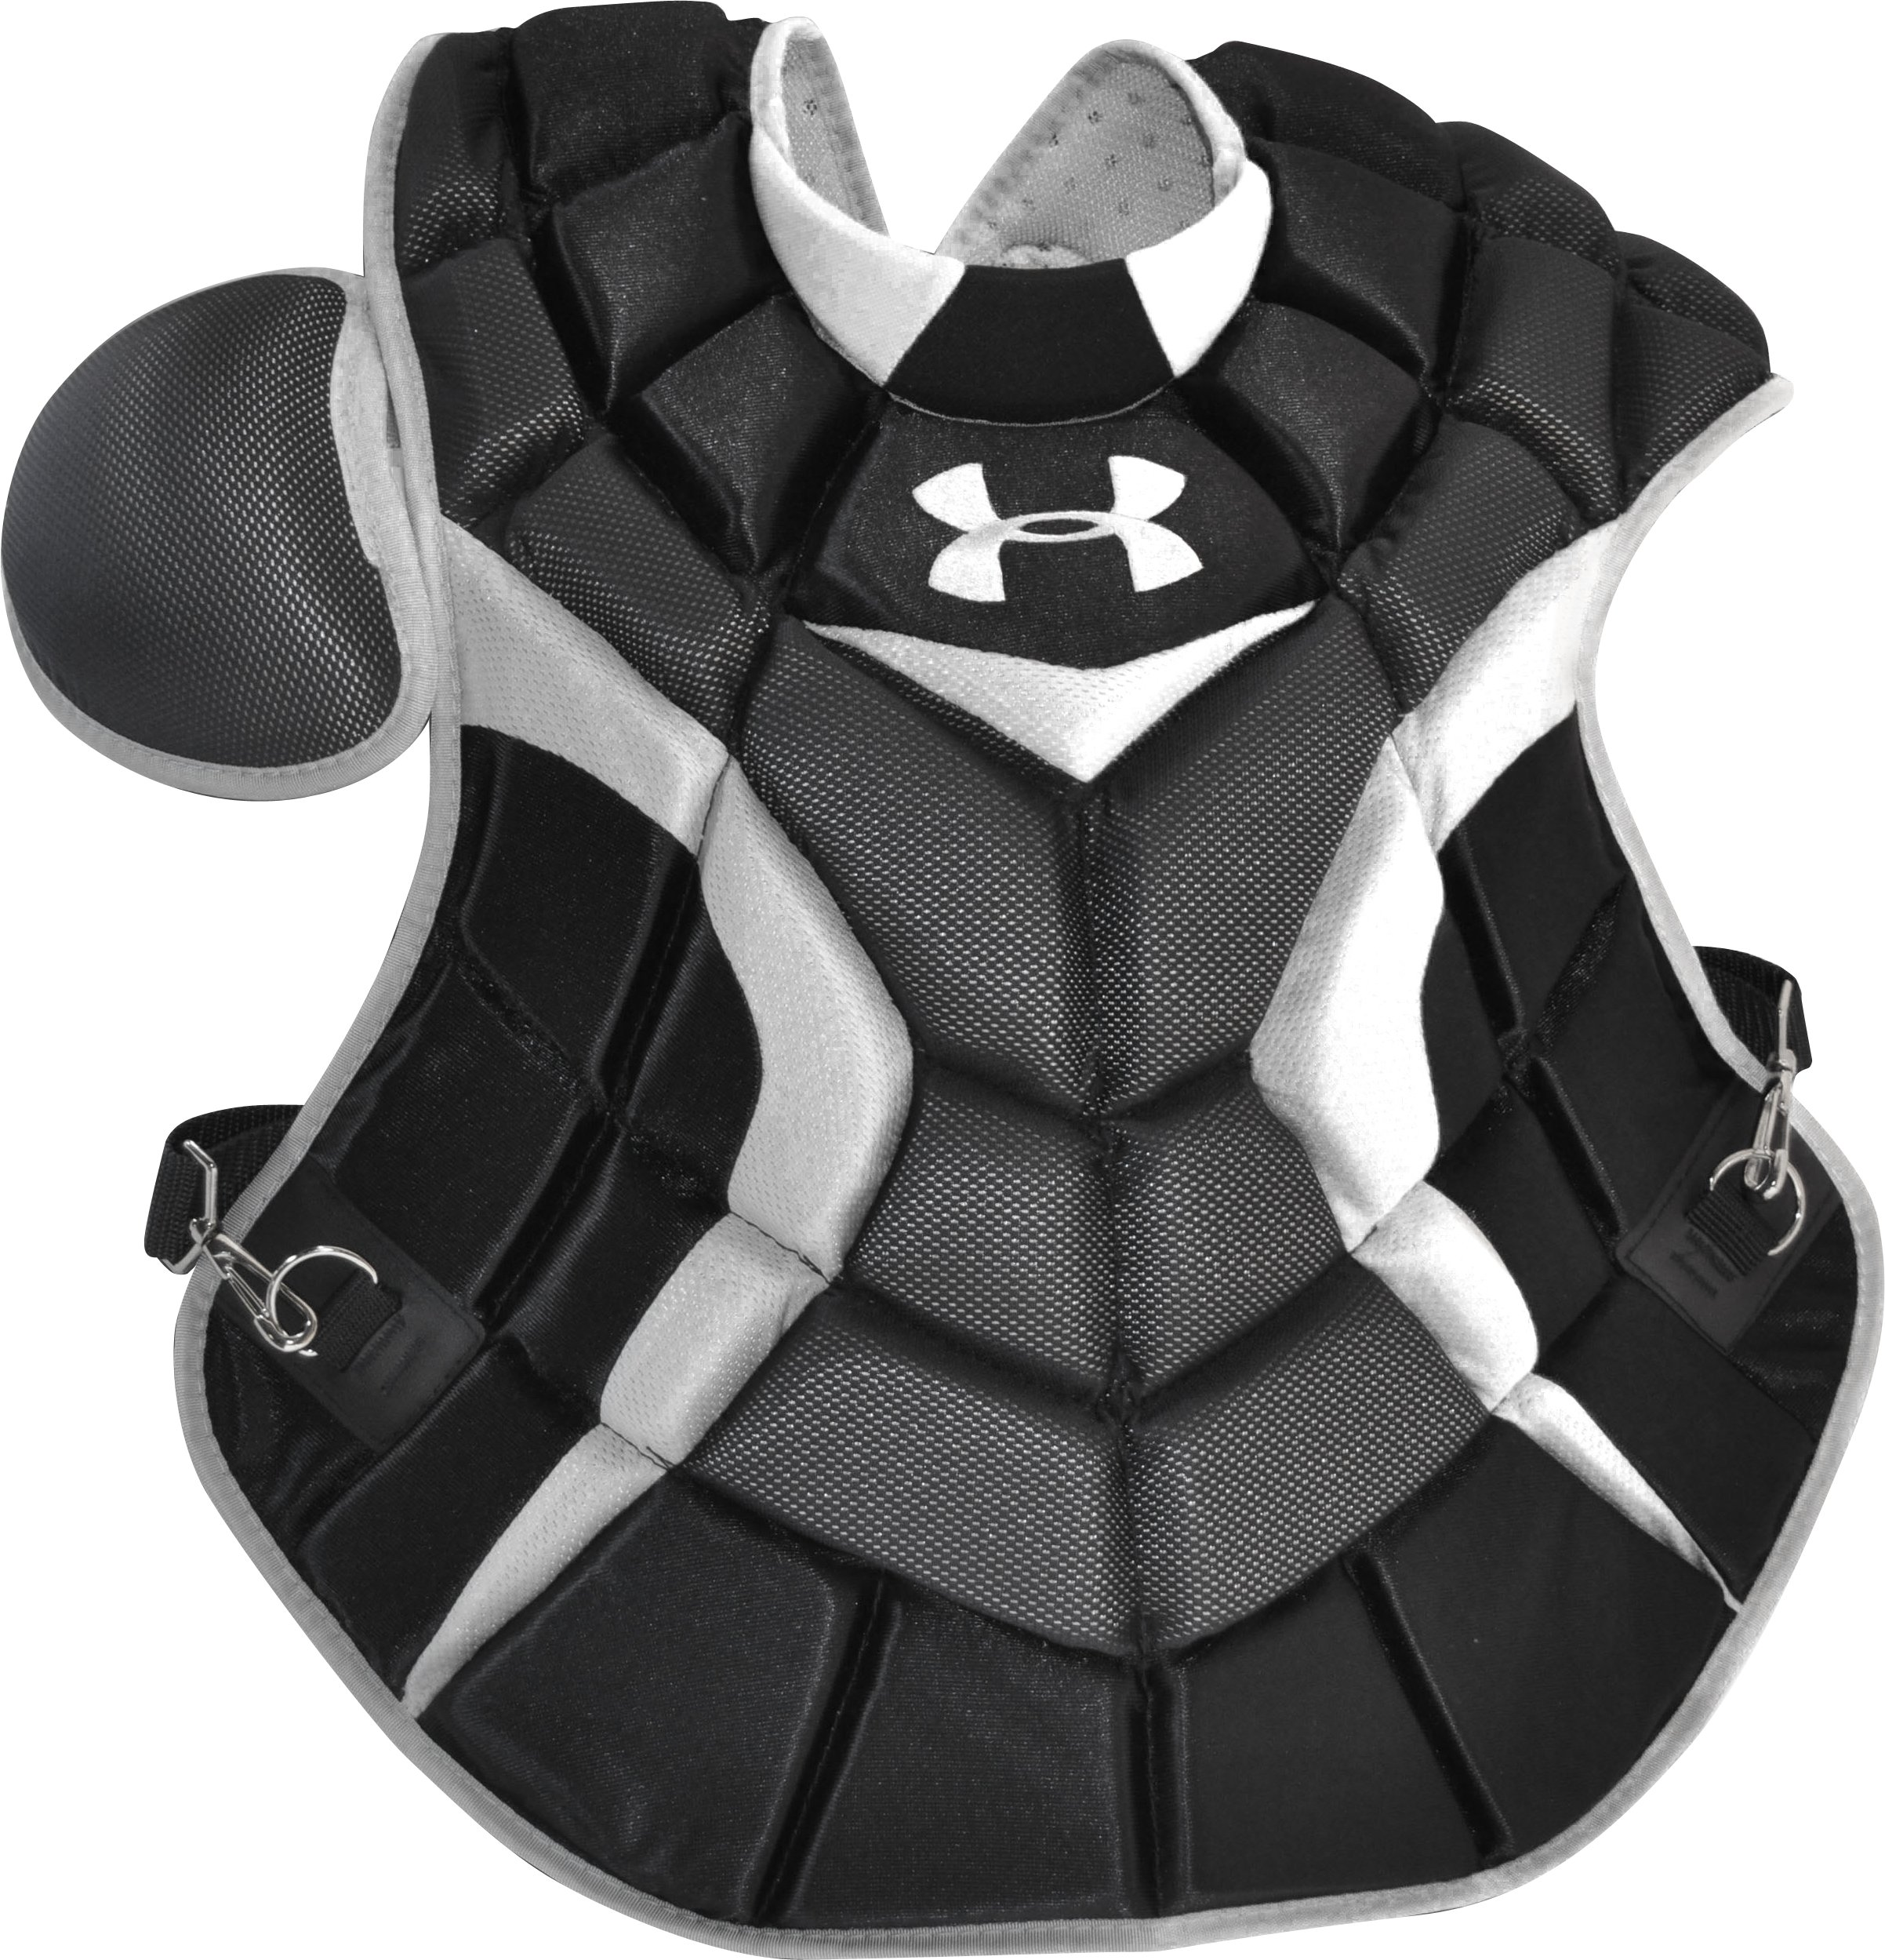 Men's Pro Catcher's Chest Protector, Black